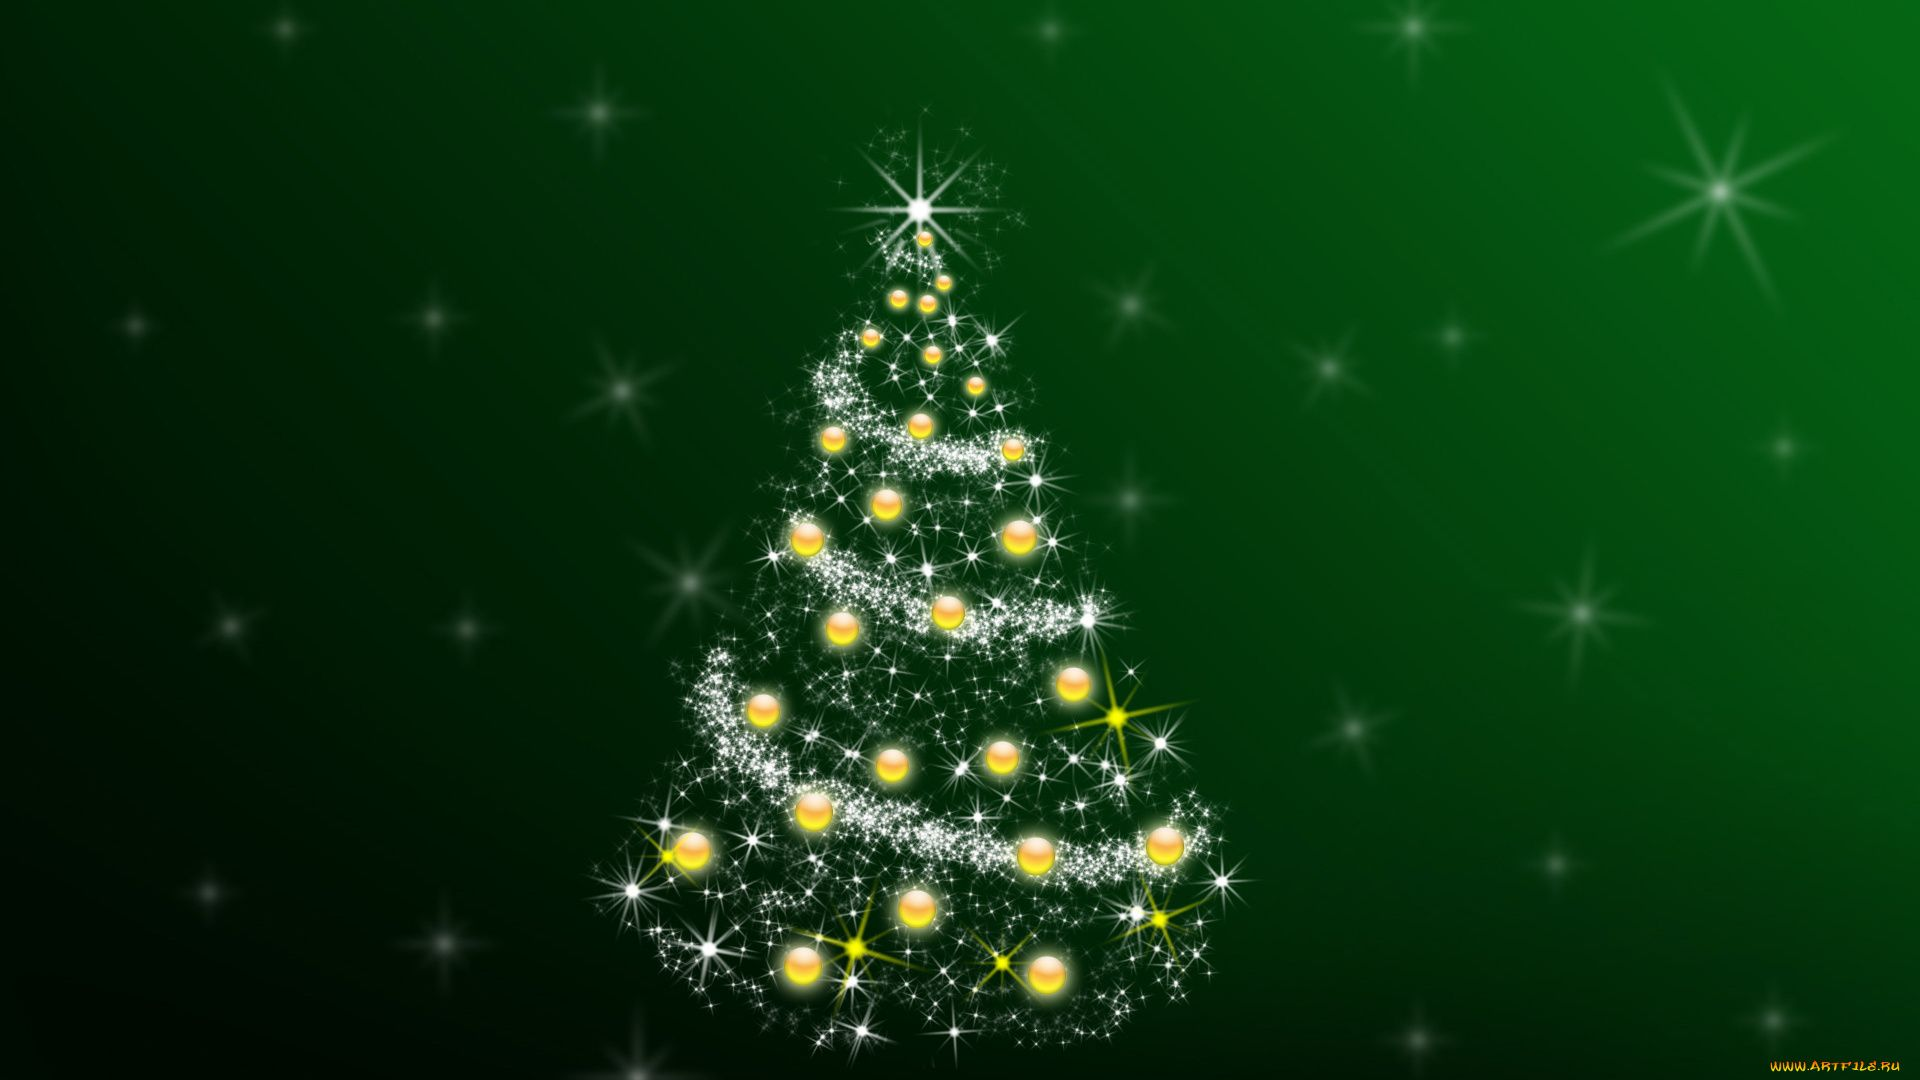 Green Christmas Free Download Wallpaper